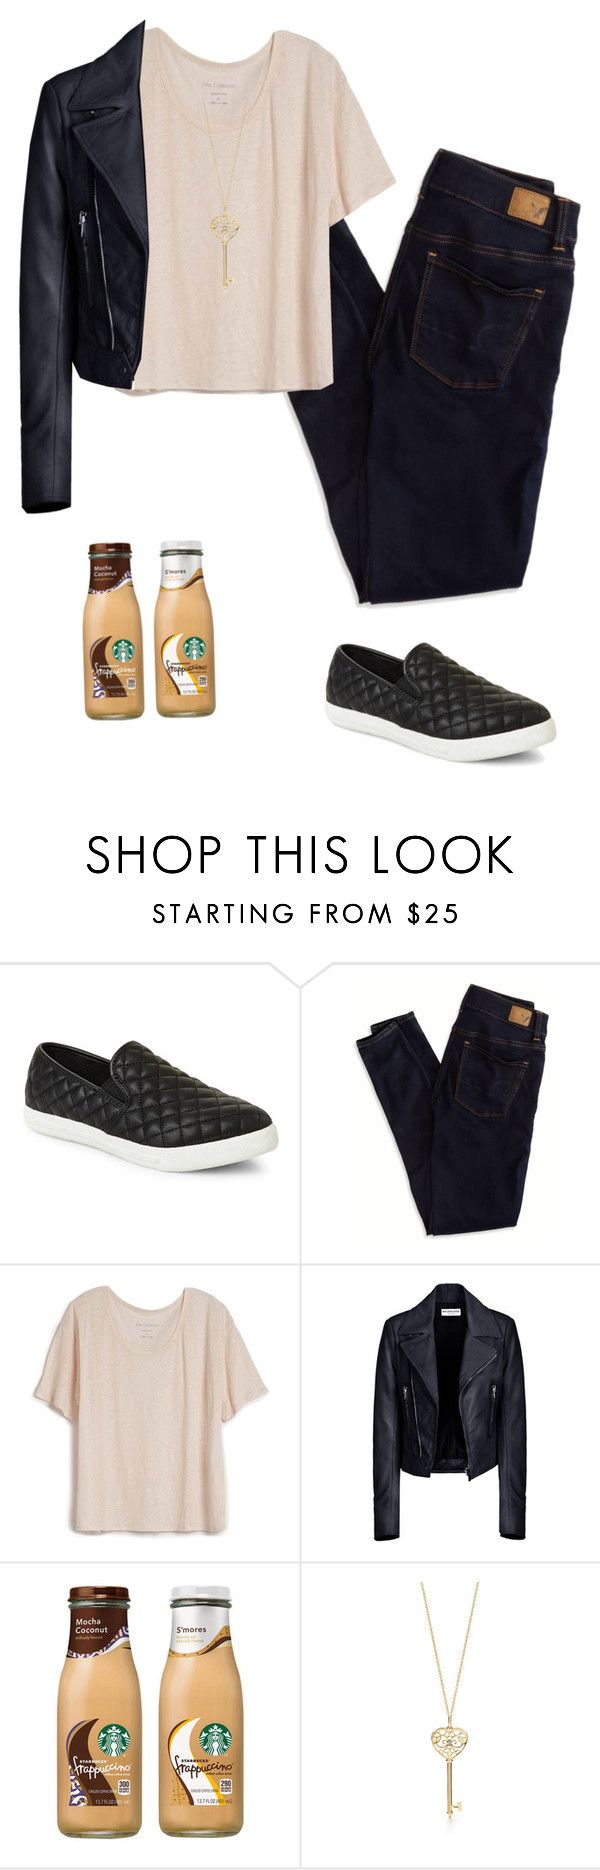 """Casual"" by clarityclark ❤ liked on Polyvore featuring Steve Madden, American Eagle Outfitters, Fine Collection and Balenciaga"